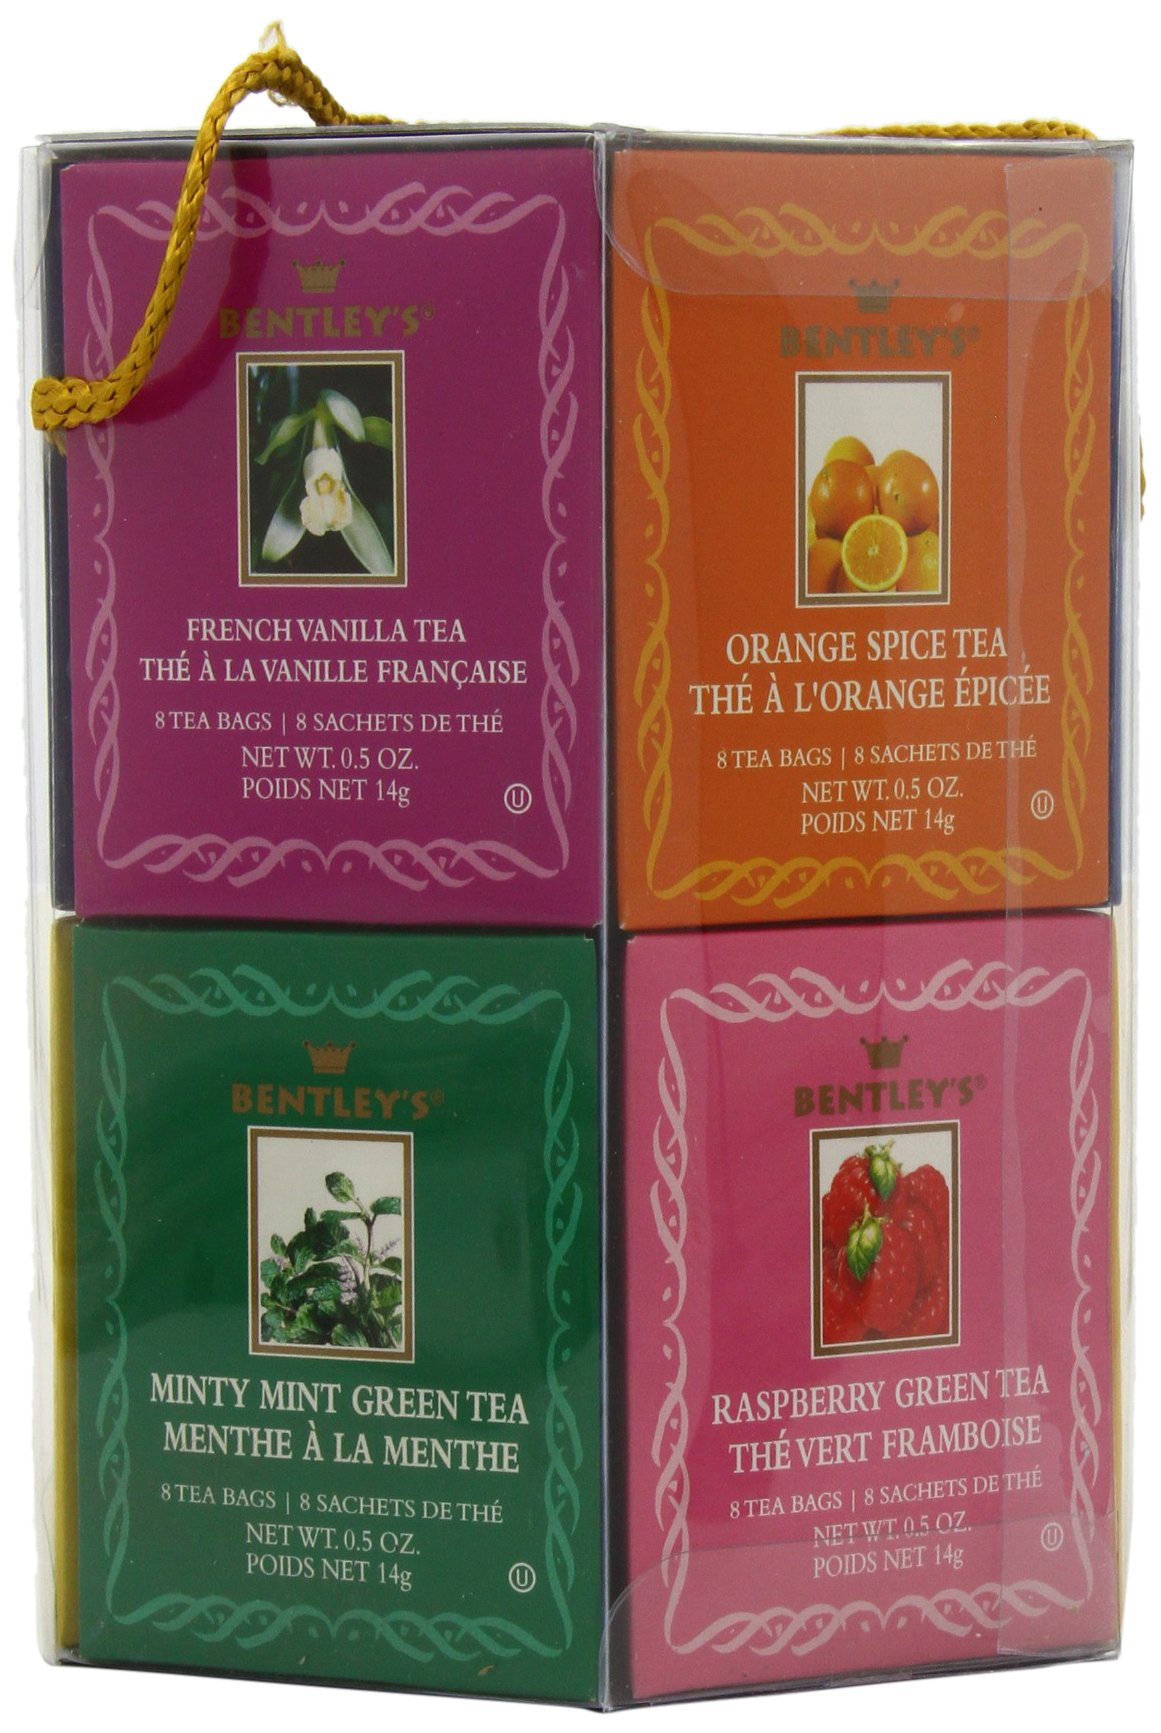 Bentley's Royal Classic Collection Assorted Flavor Gift Pack, 96 Tea Bags (Pack of 2), Includes 8 Bags Each of a Variety of Black and Green Tea Flavors by Bentley's (Image #6)